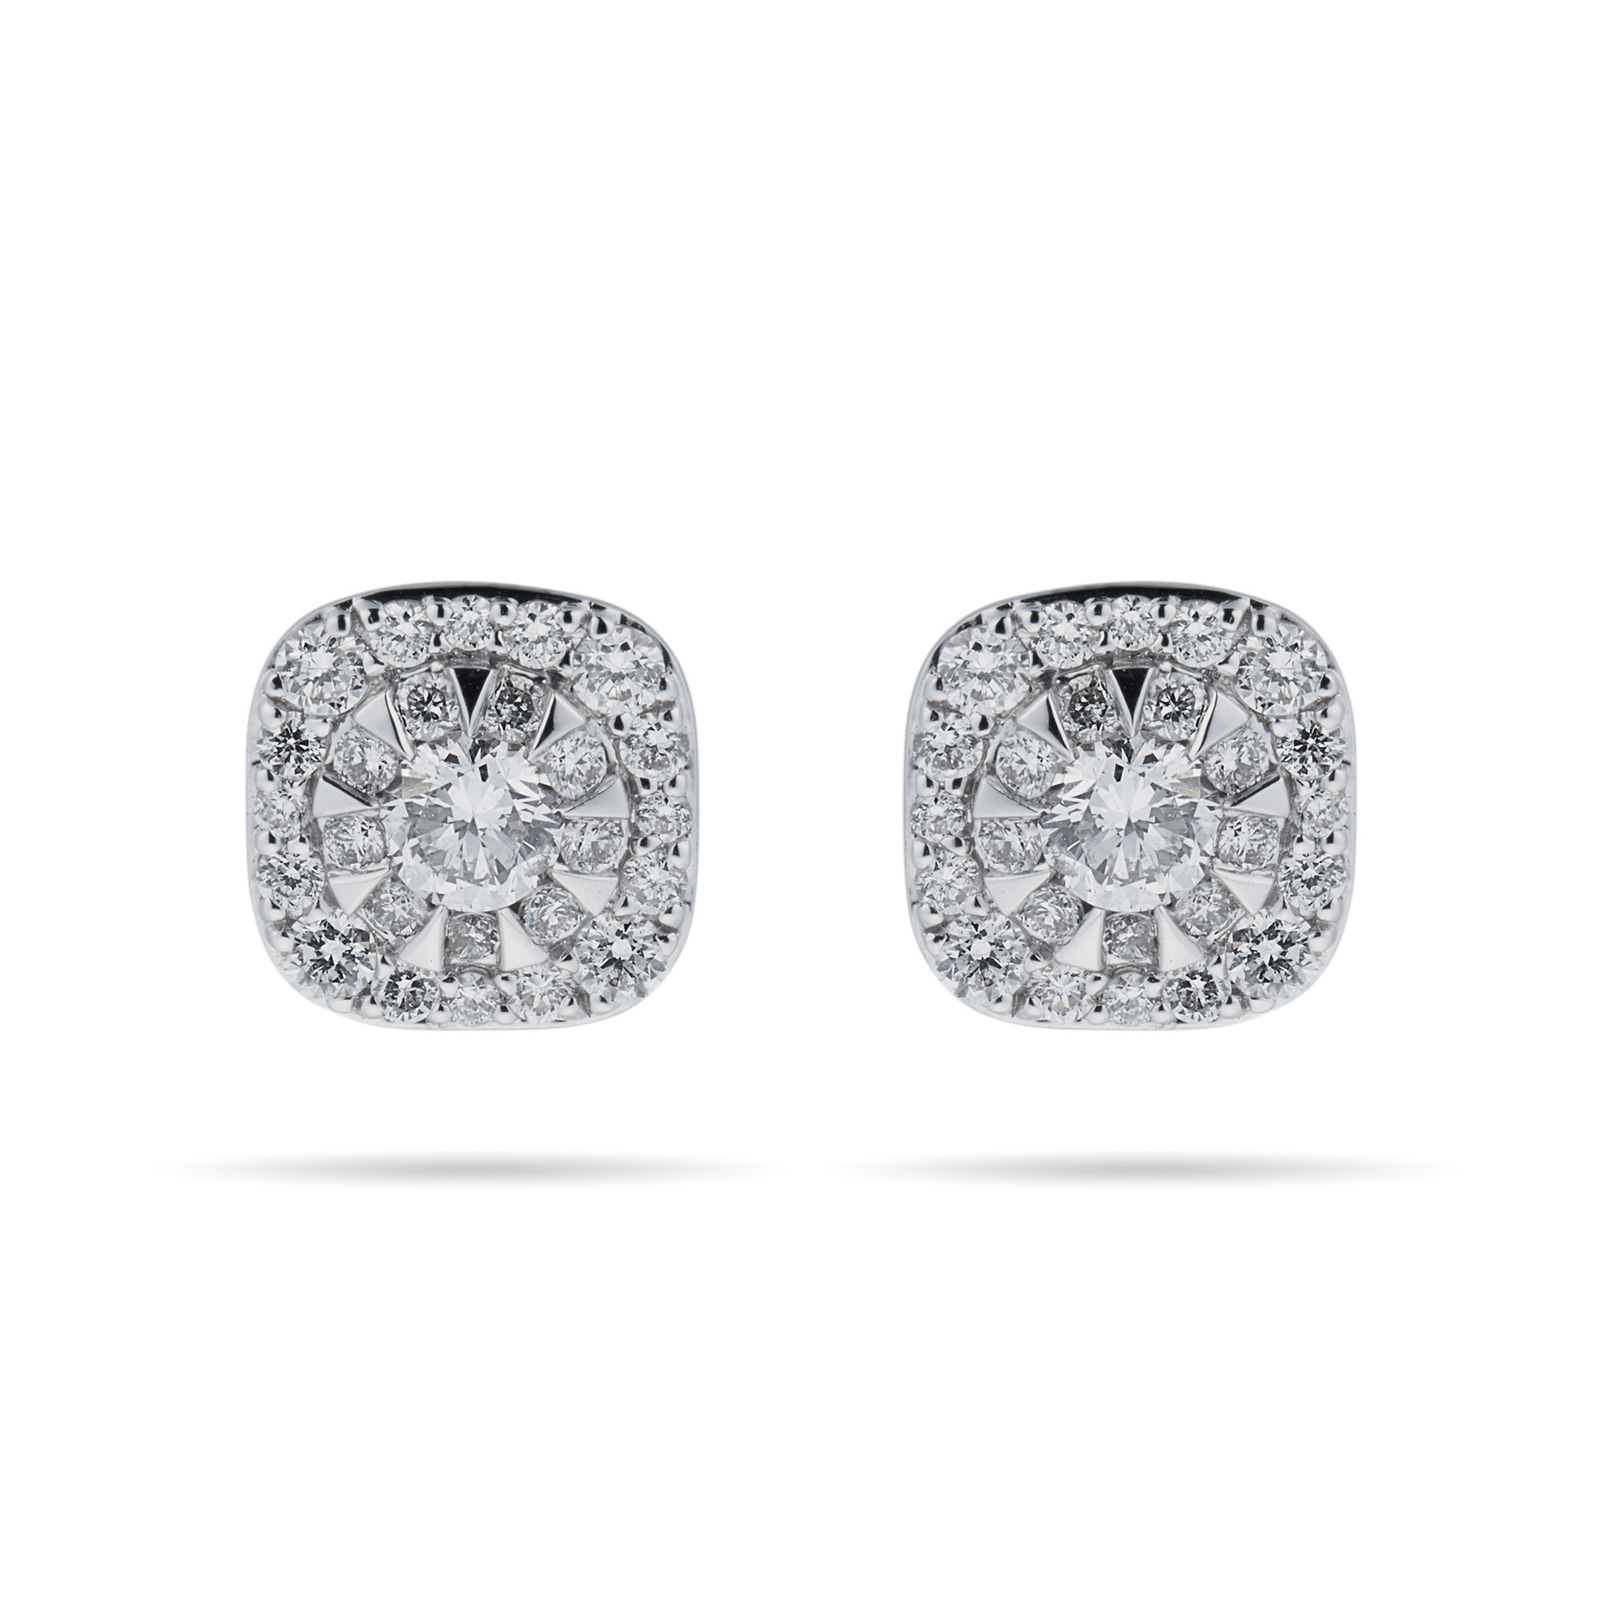 Masquerade 18ct White Gold 0 61cttw Diamond Stud Earrings